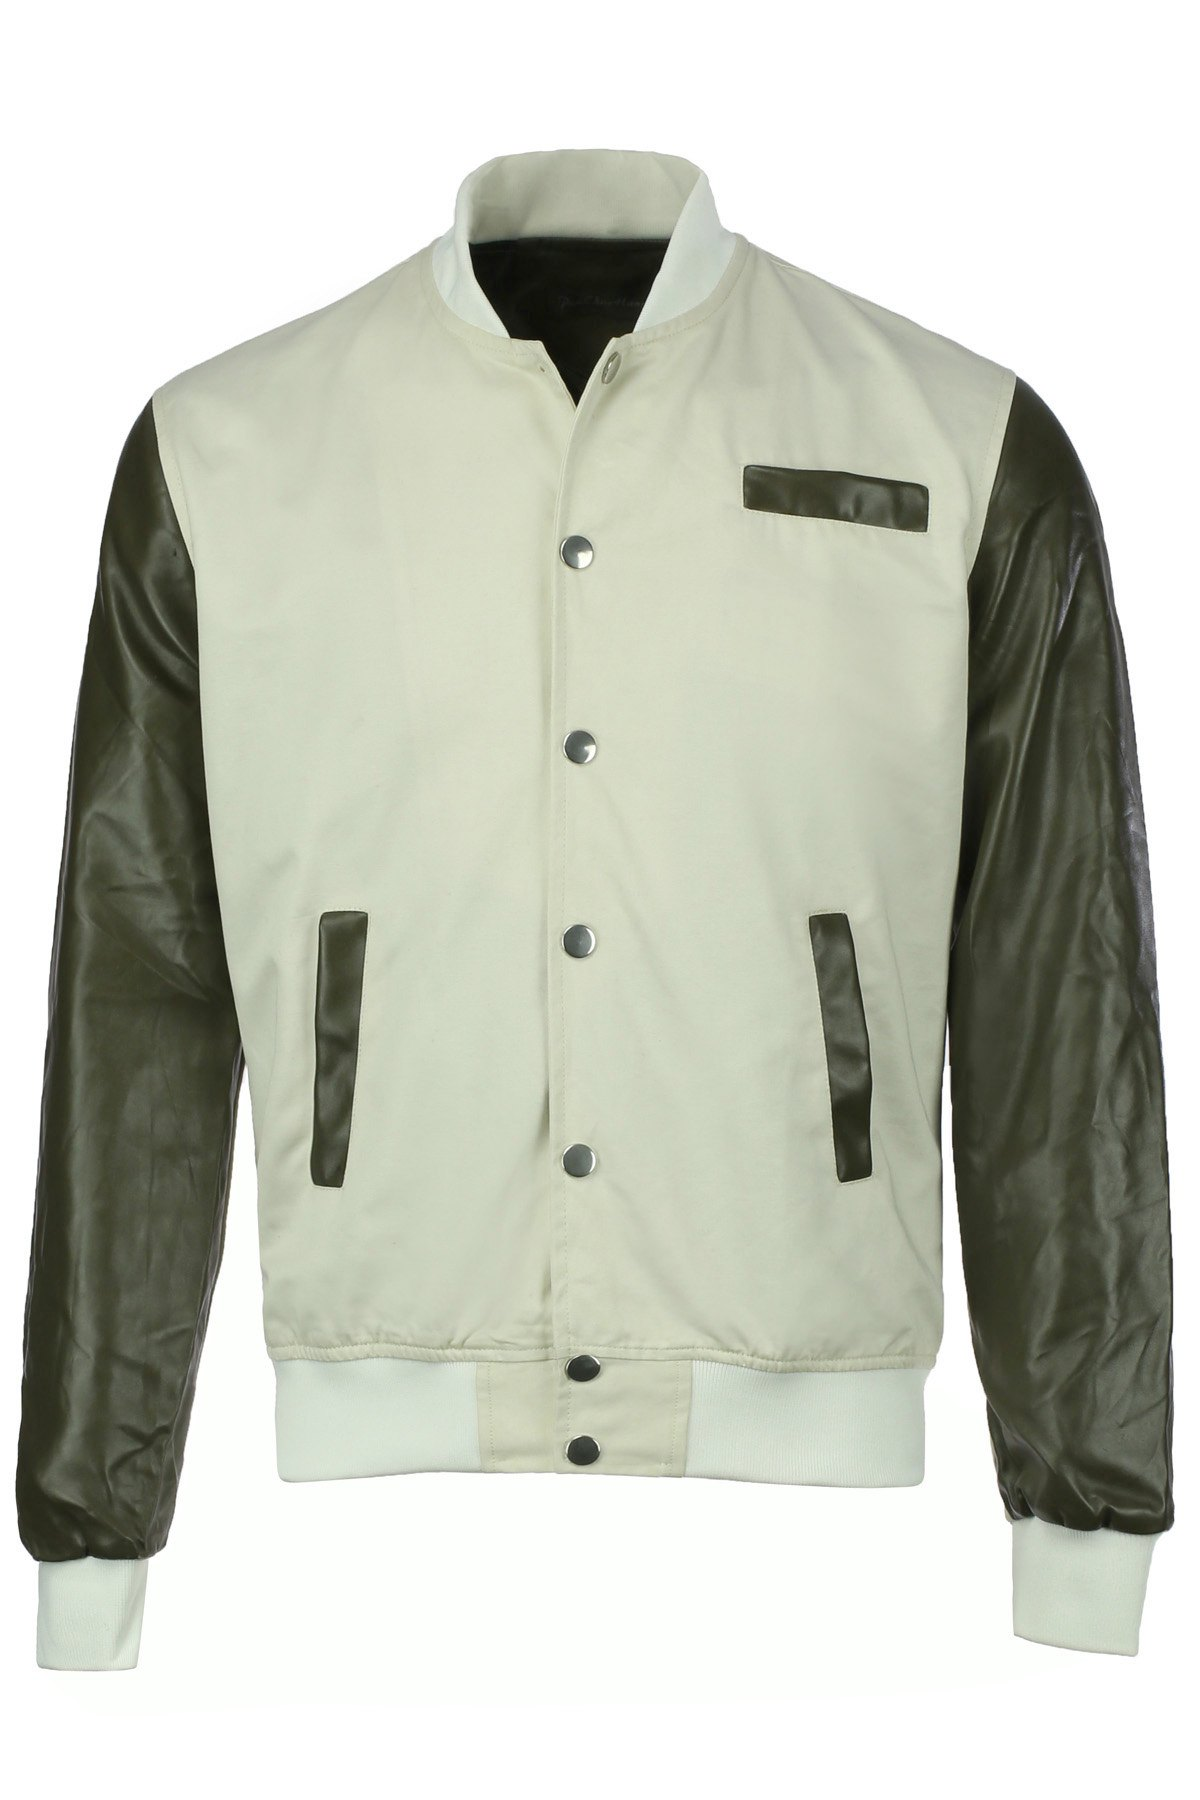 Stylish Stand Collar Color Block PU Leather Long Sleeves Polyester Jacket For Men - BEIGE 3XL